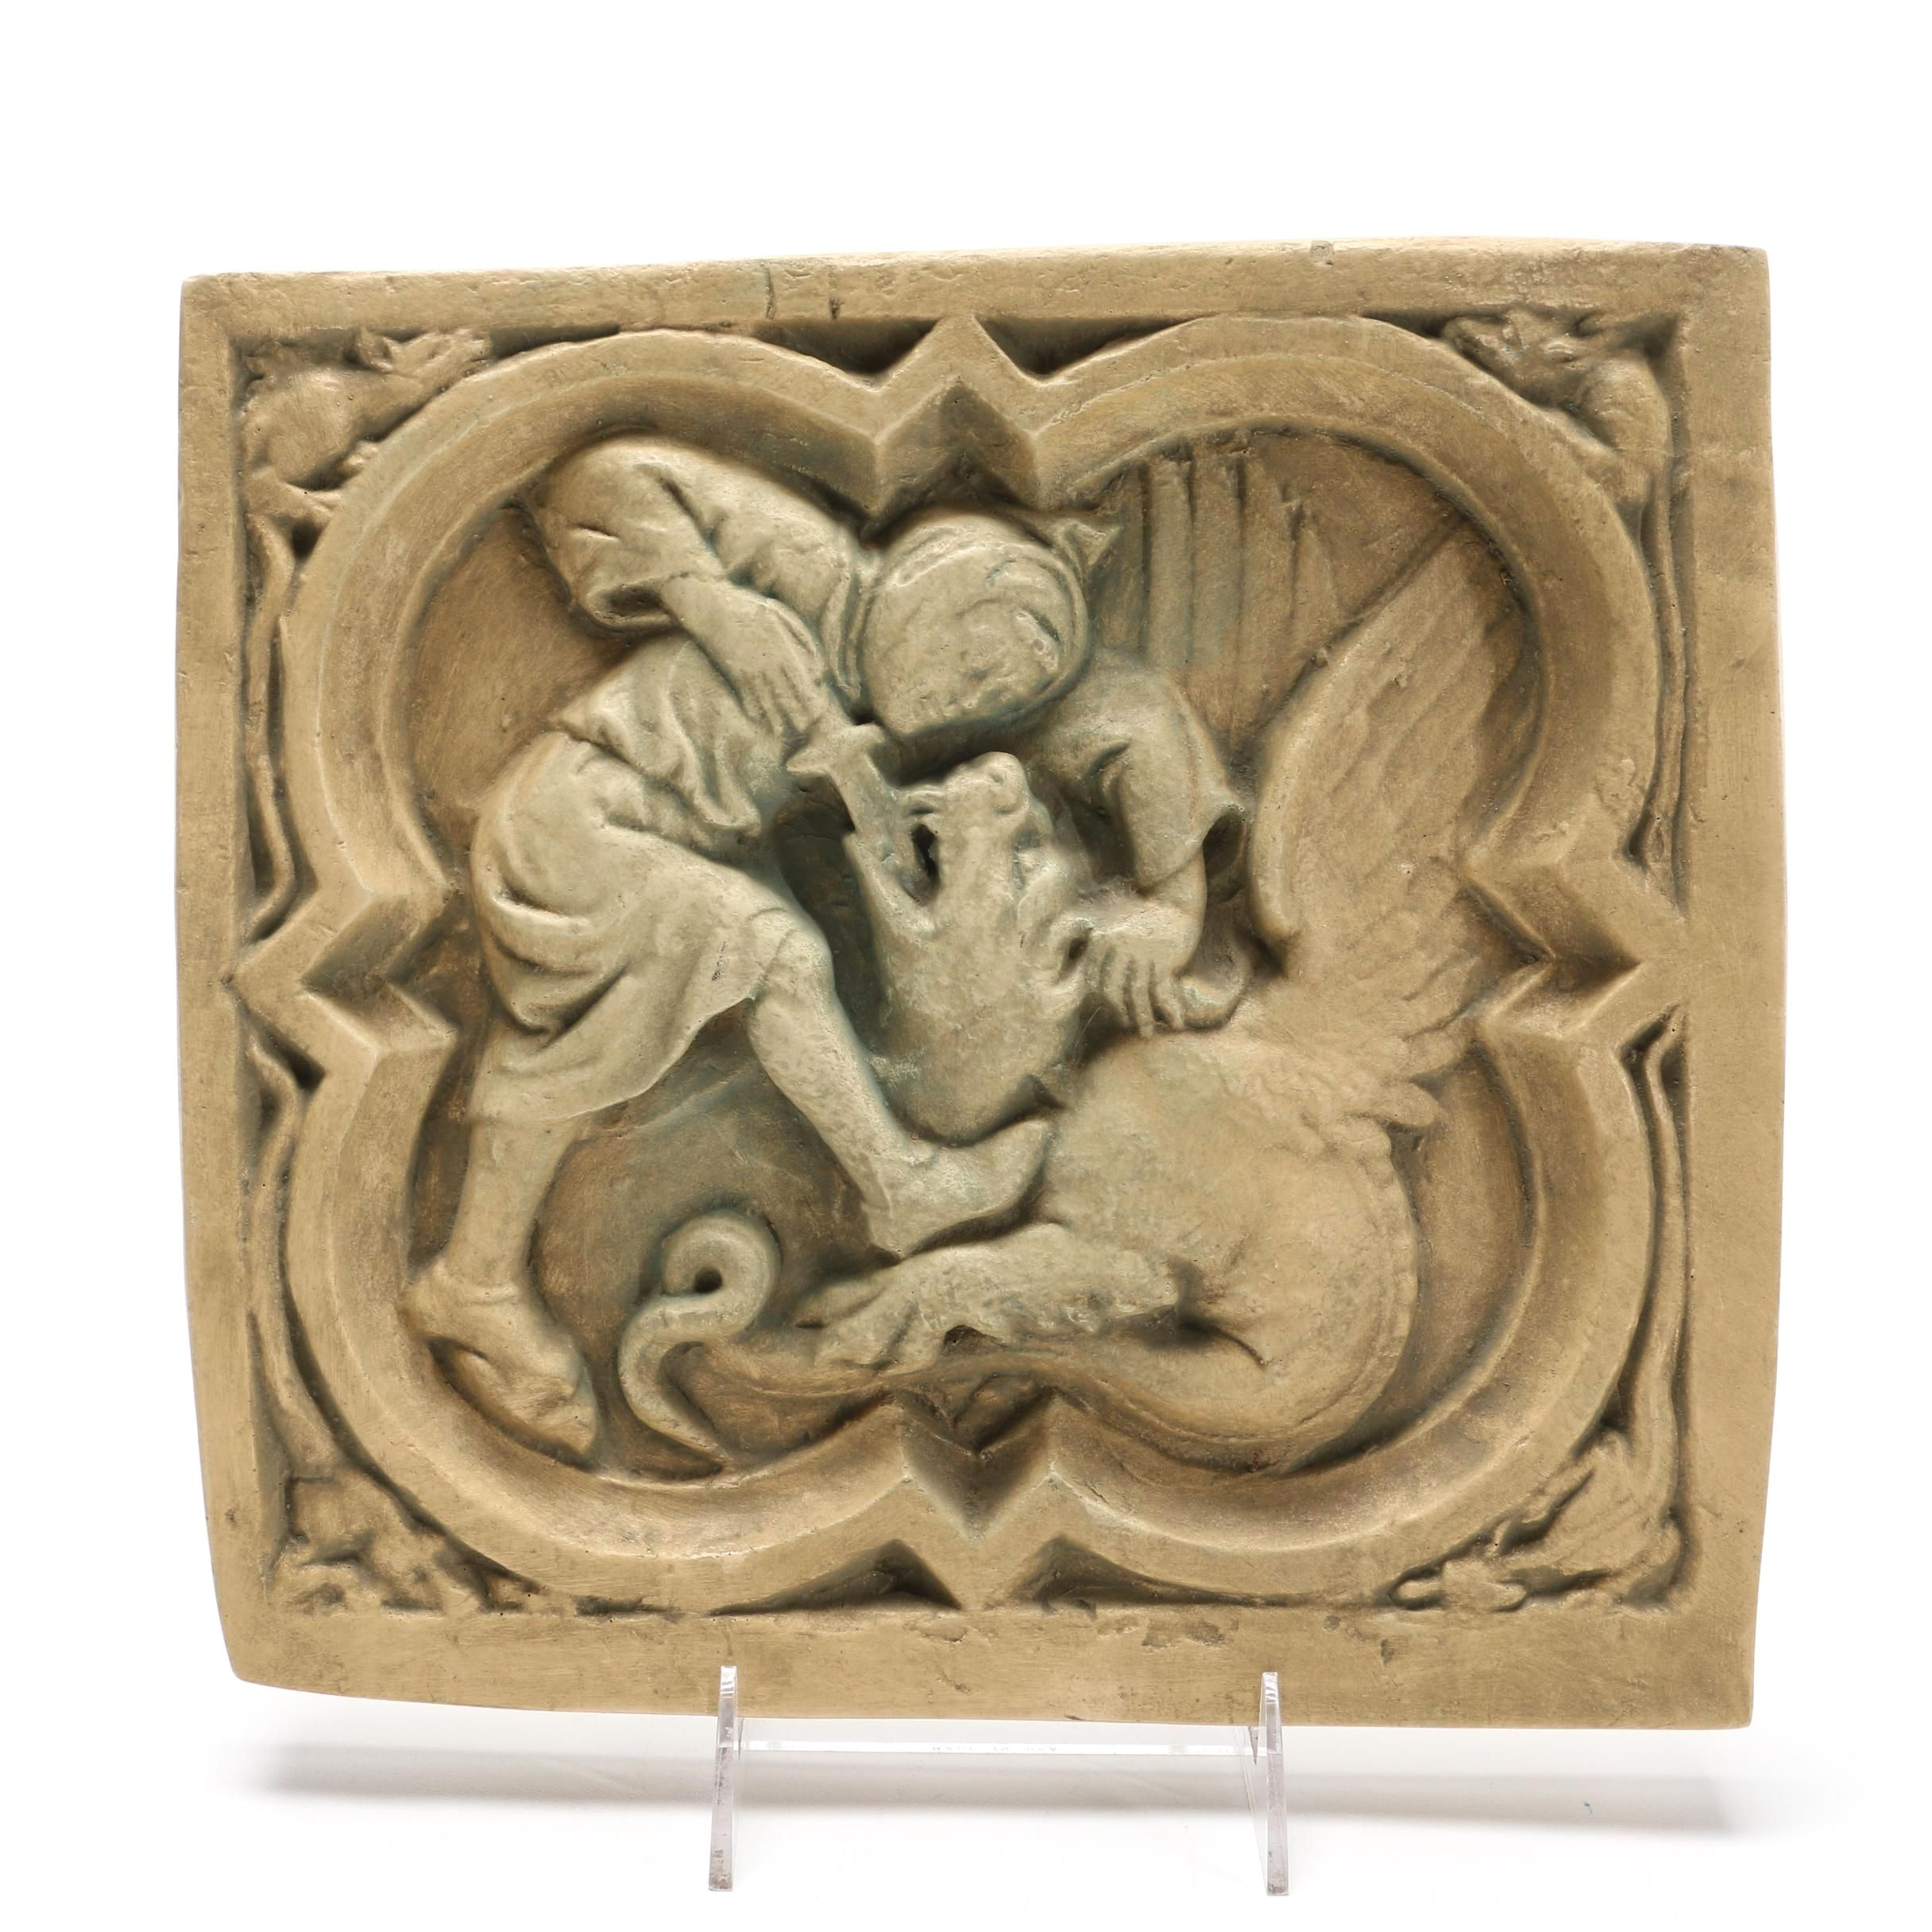 Reproduction Resin Sculpture of St. George Slaying a Dragon